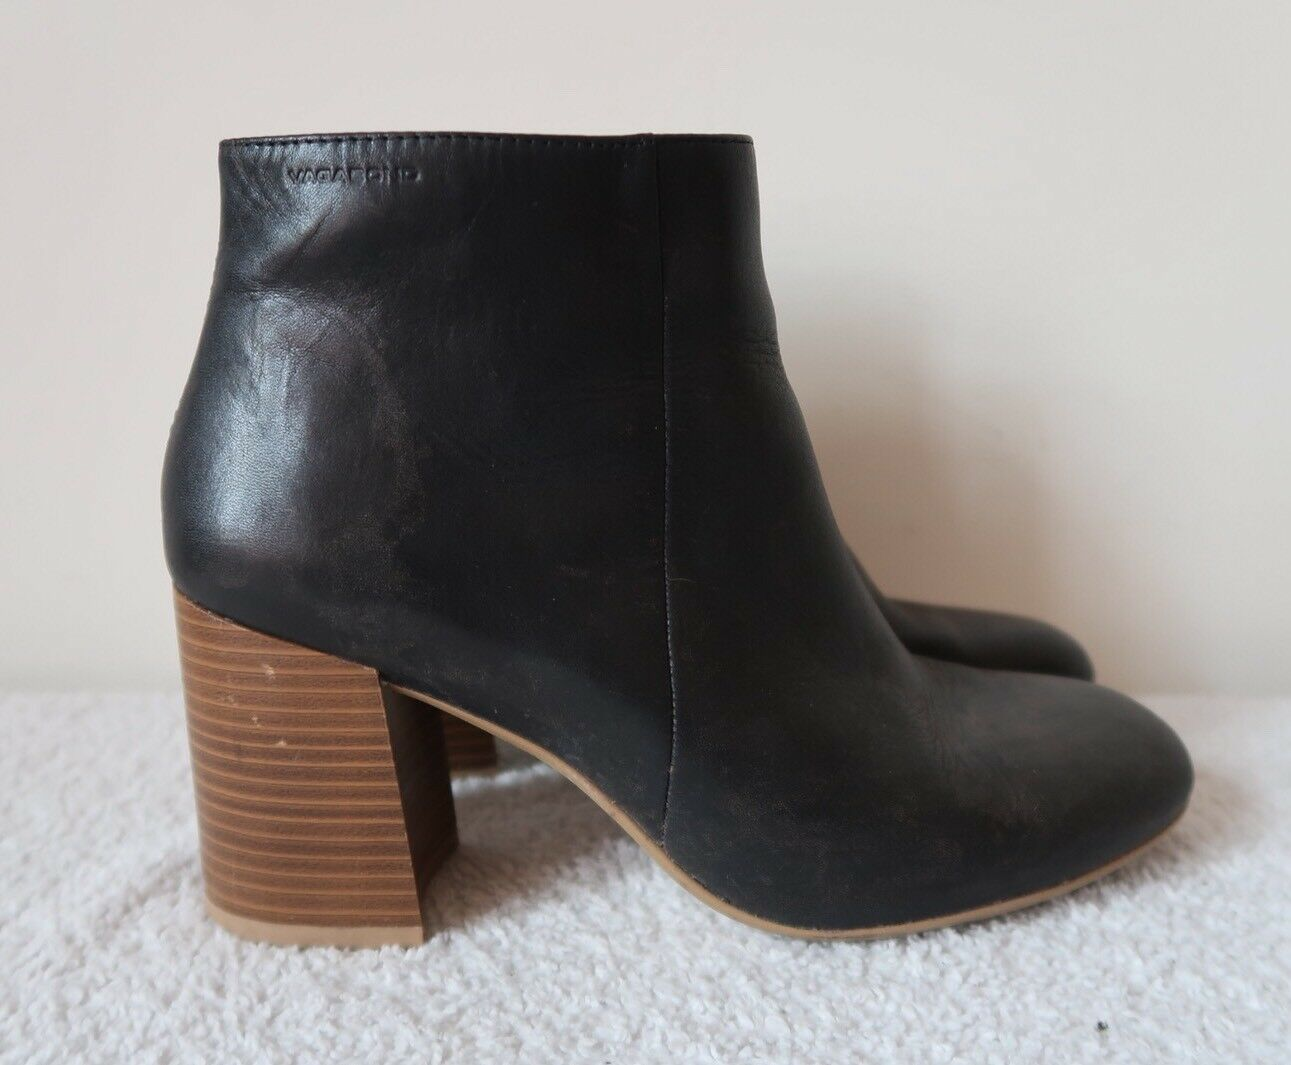 Black Boots Size 6 VAGABOND Stacked Tiered Block Heel Ankle Booties Leather